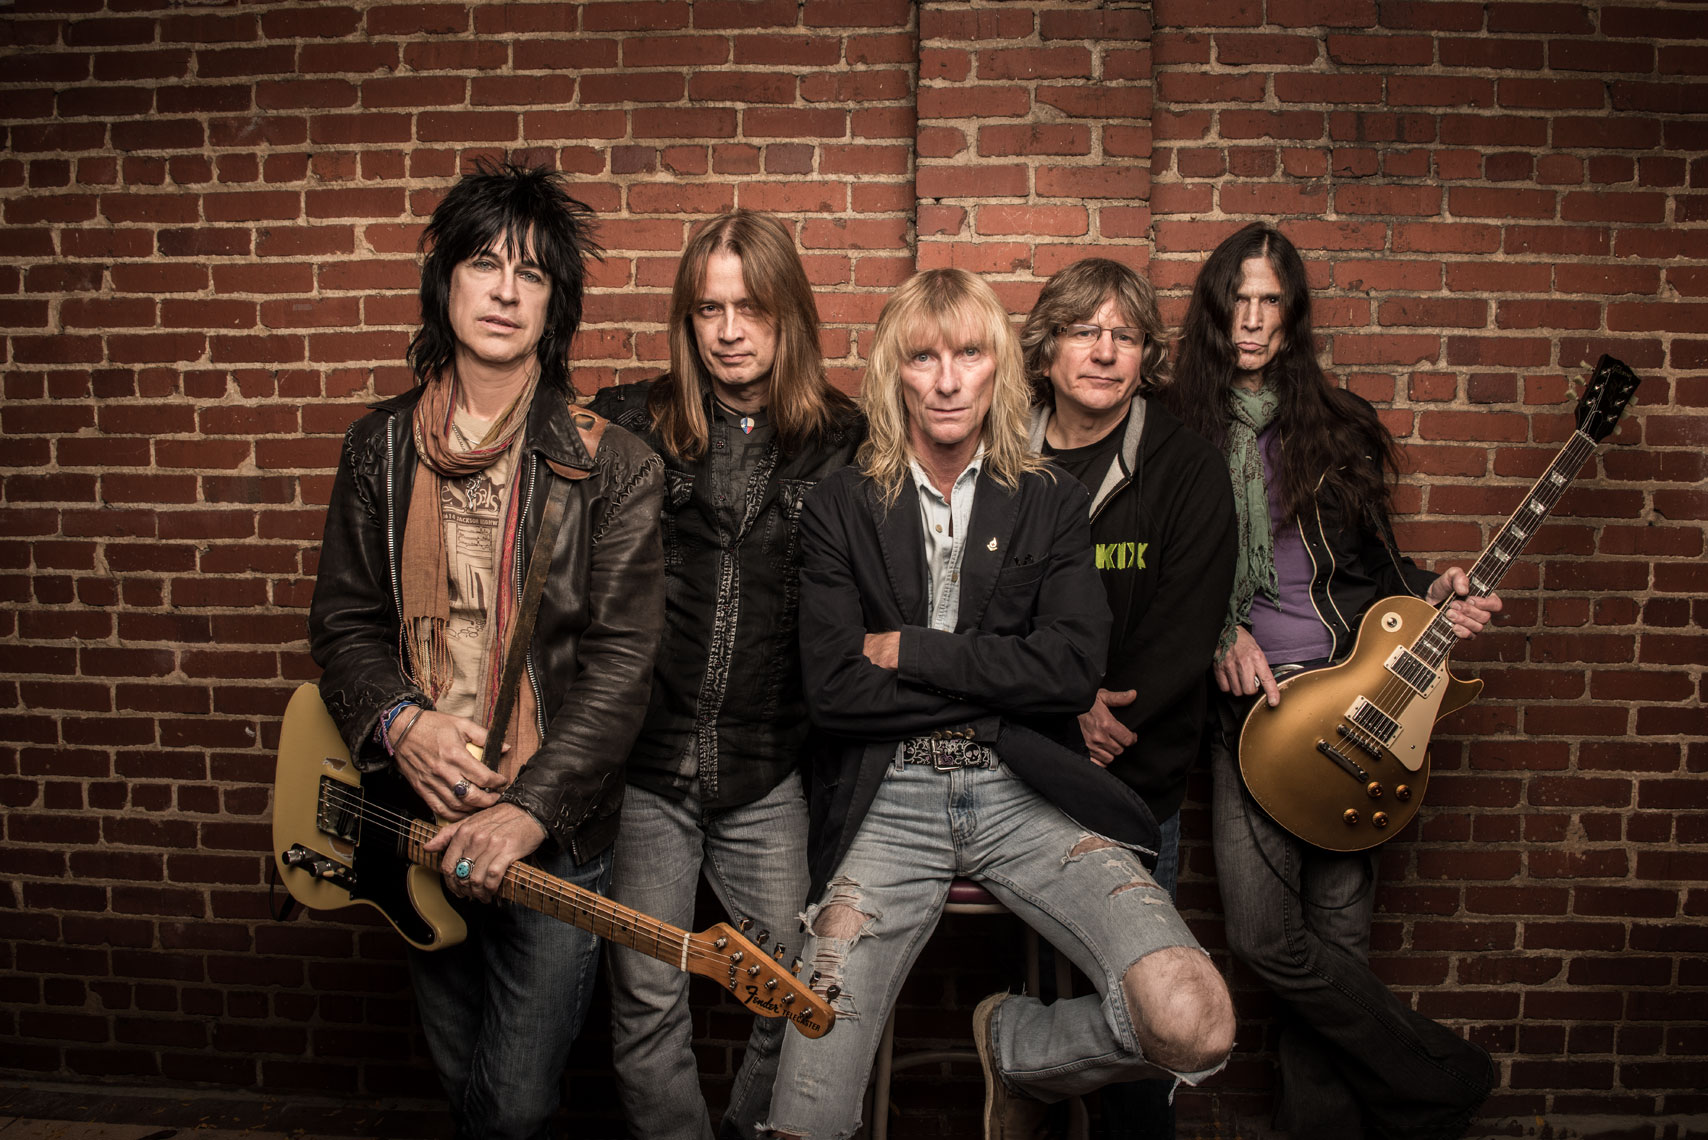 Kix, by Baltimore photographer Mike Morgan